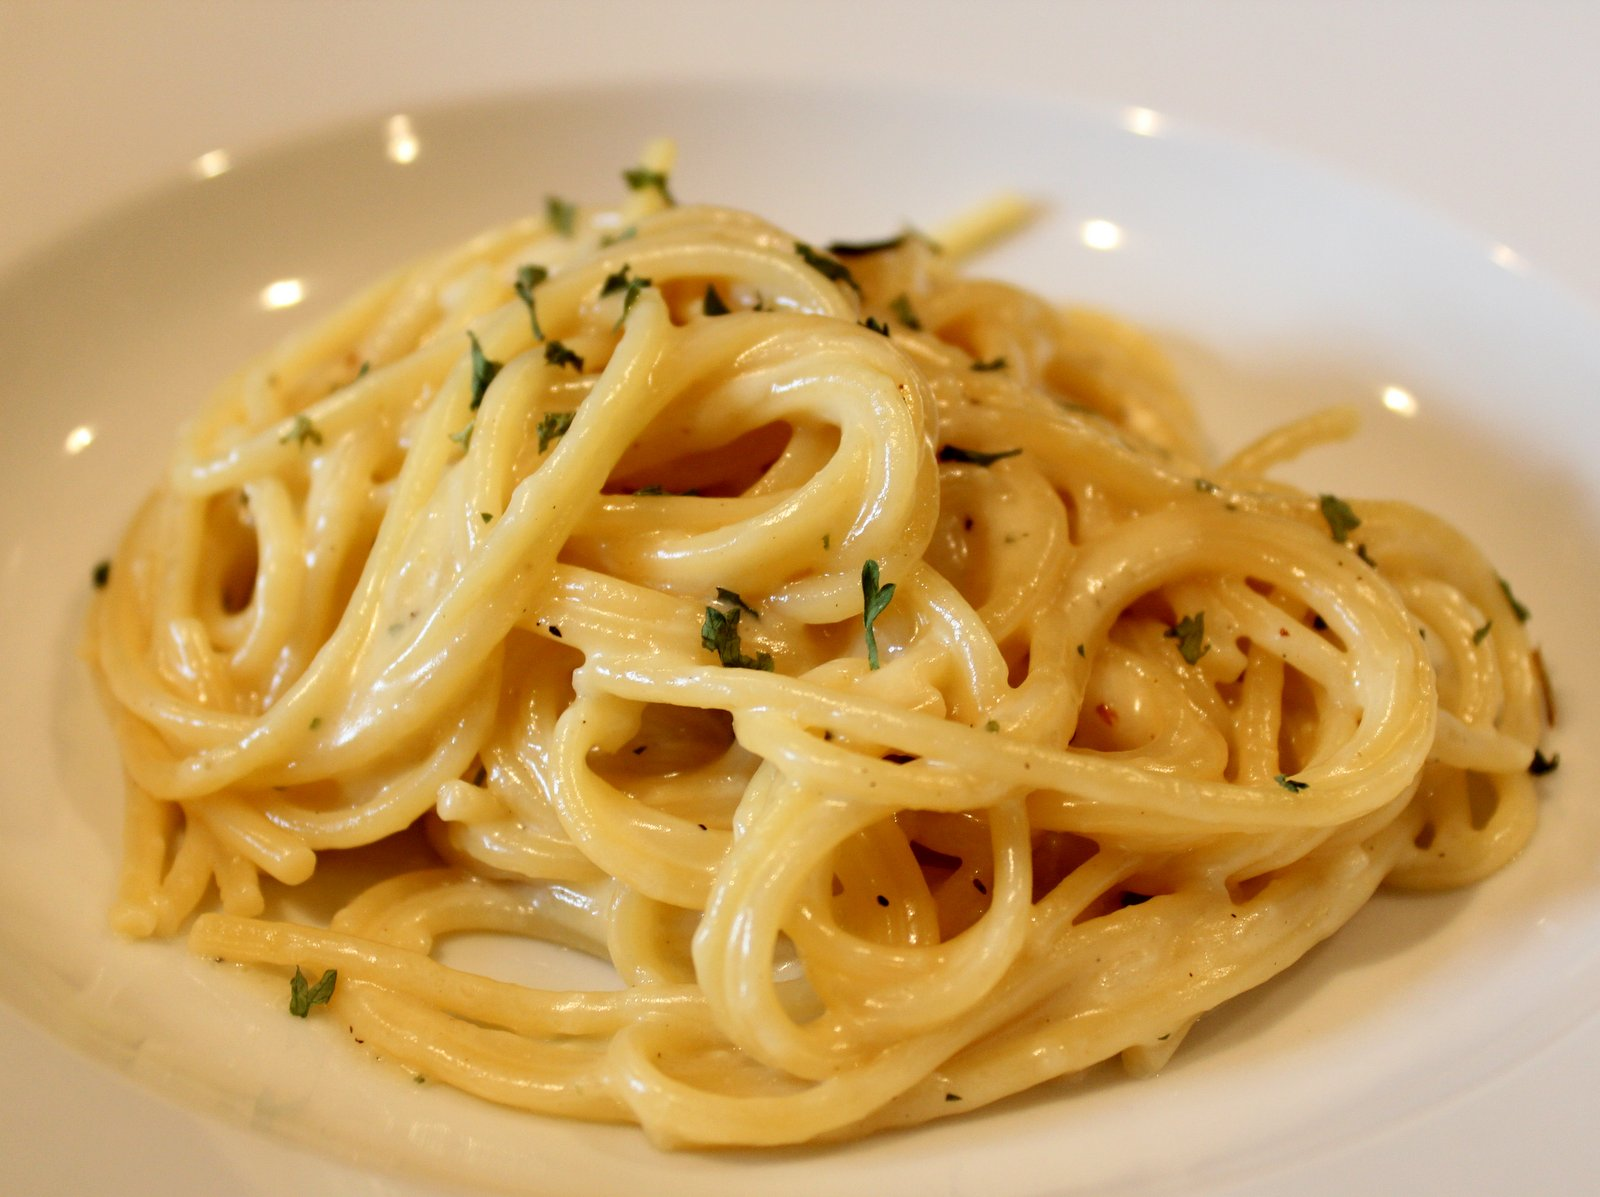 Dinner Delish: Creamy Garlic Pasta